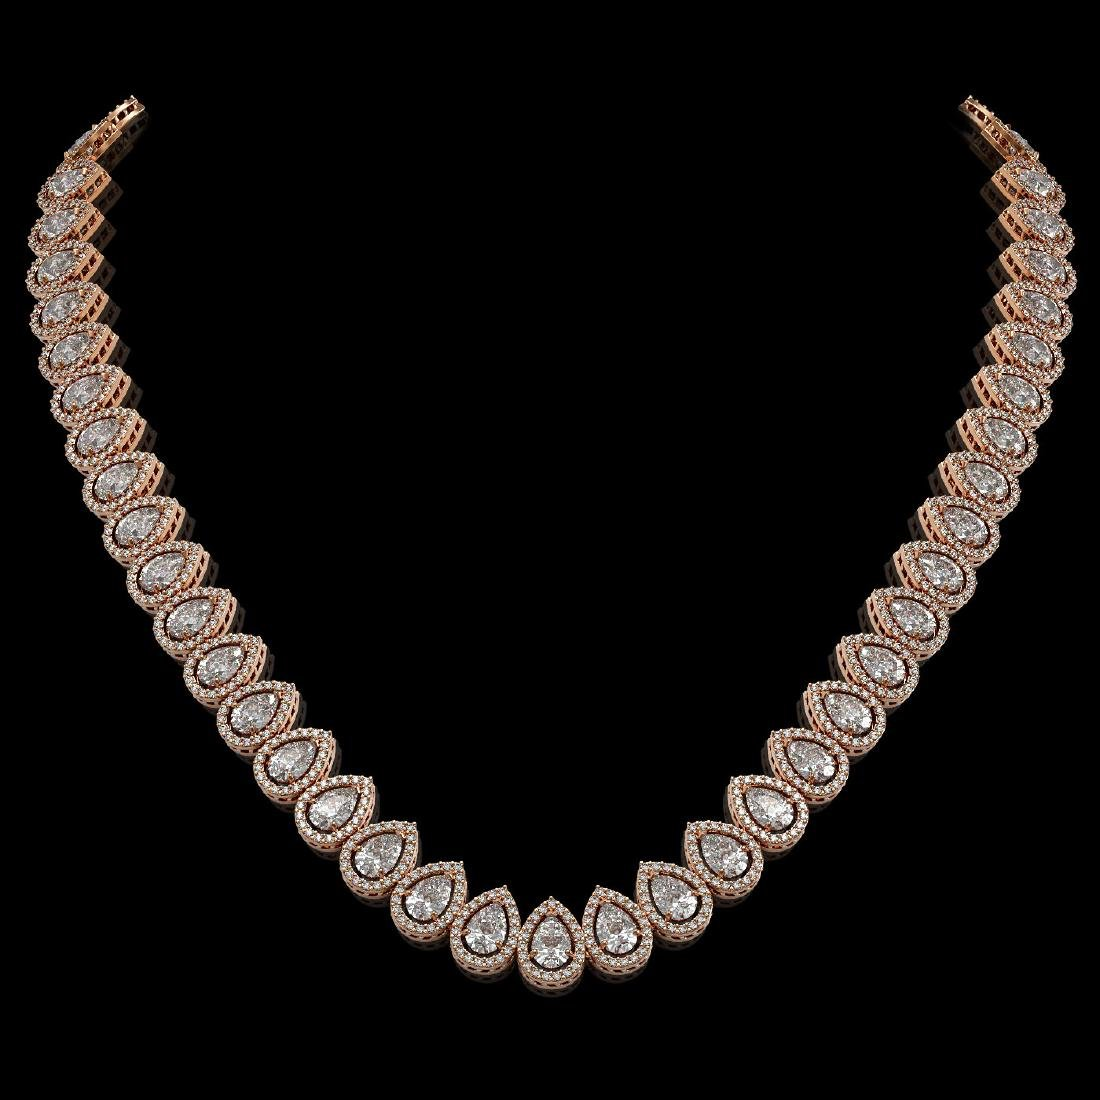 34.83 ctw Pear Diamond Necklace 18K Rose Gold -